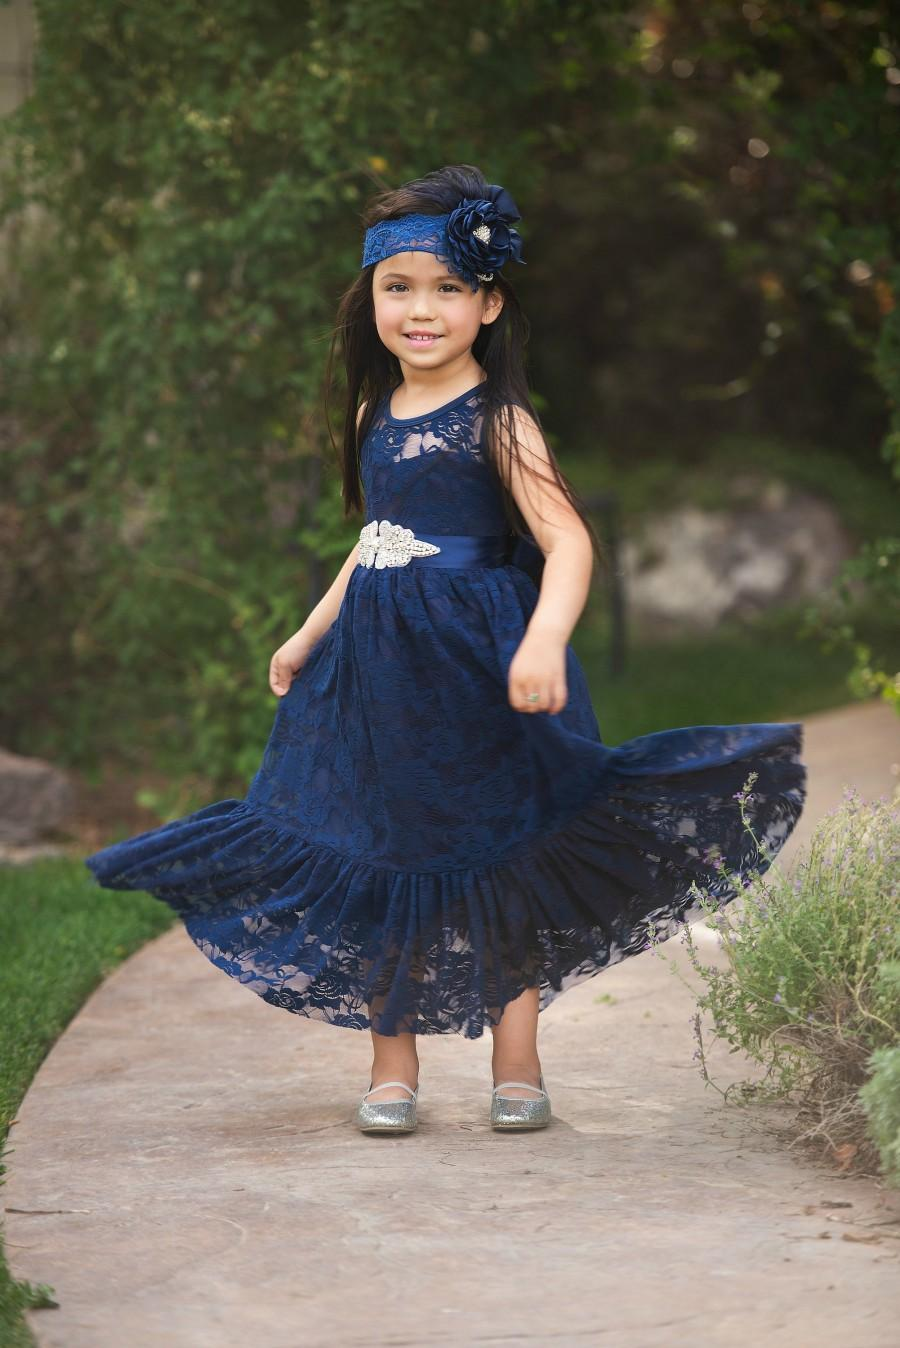 Wedding - SALE Navy Blue Flower girl dress, Flower girl dresses, Easter girls lace dress, Country lace dress, Rustic flower girl dress.